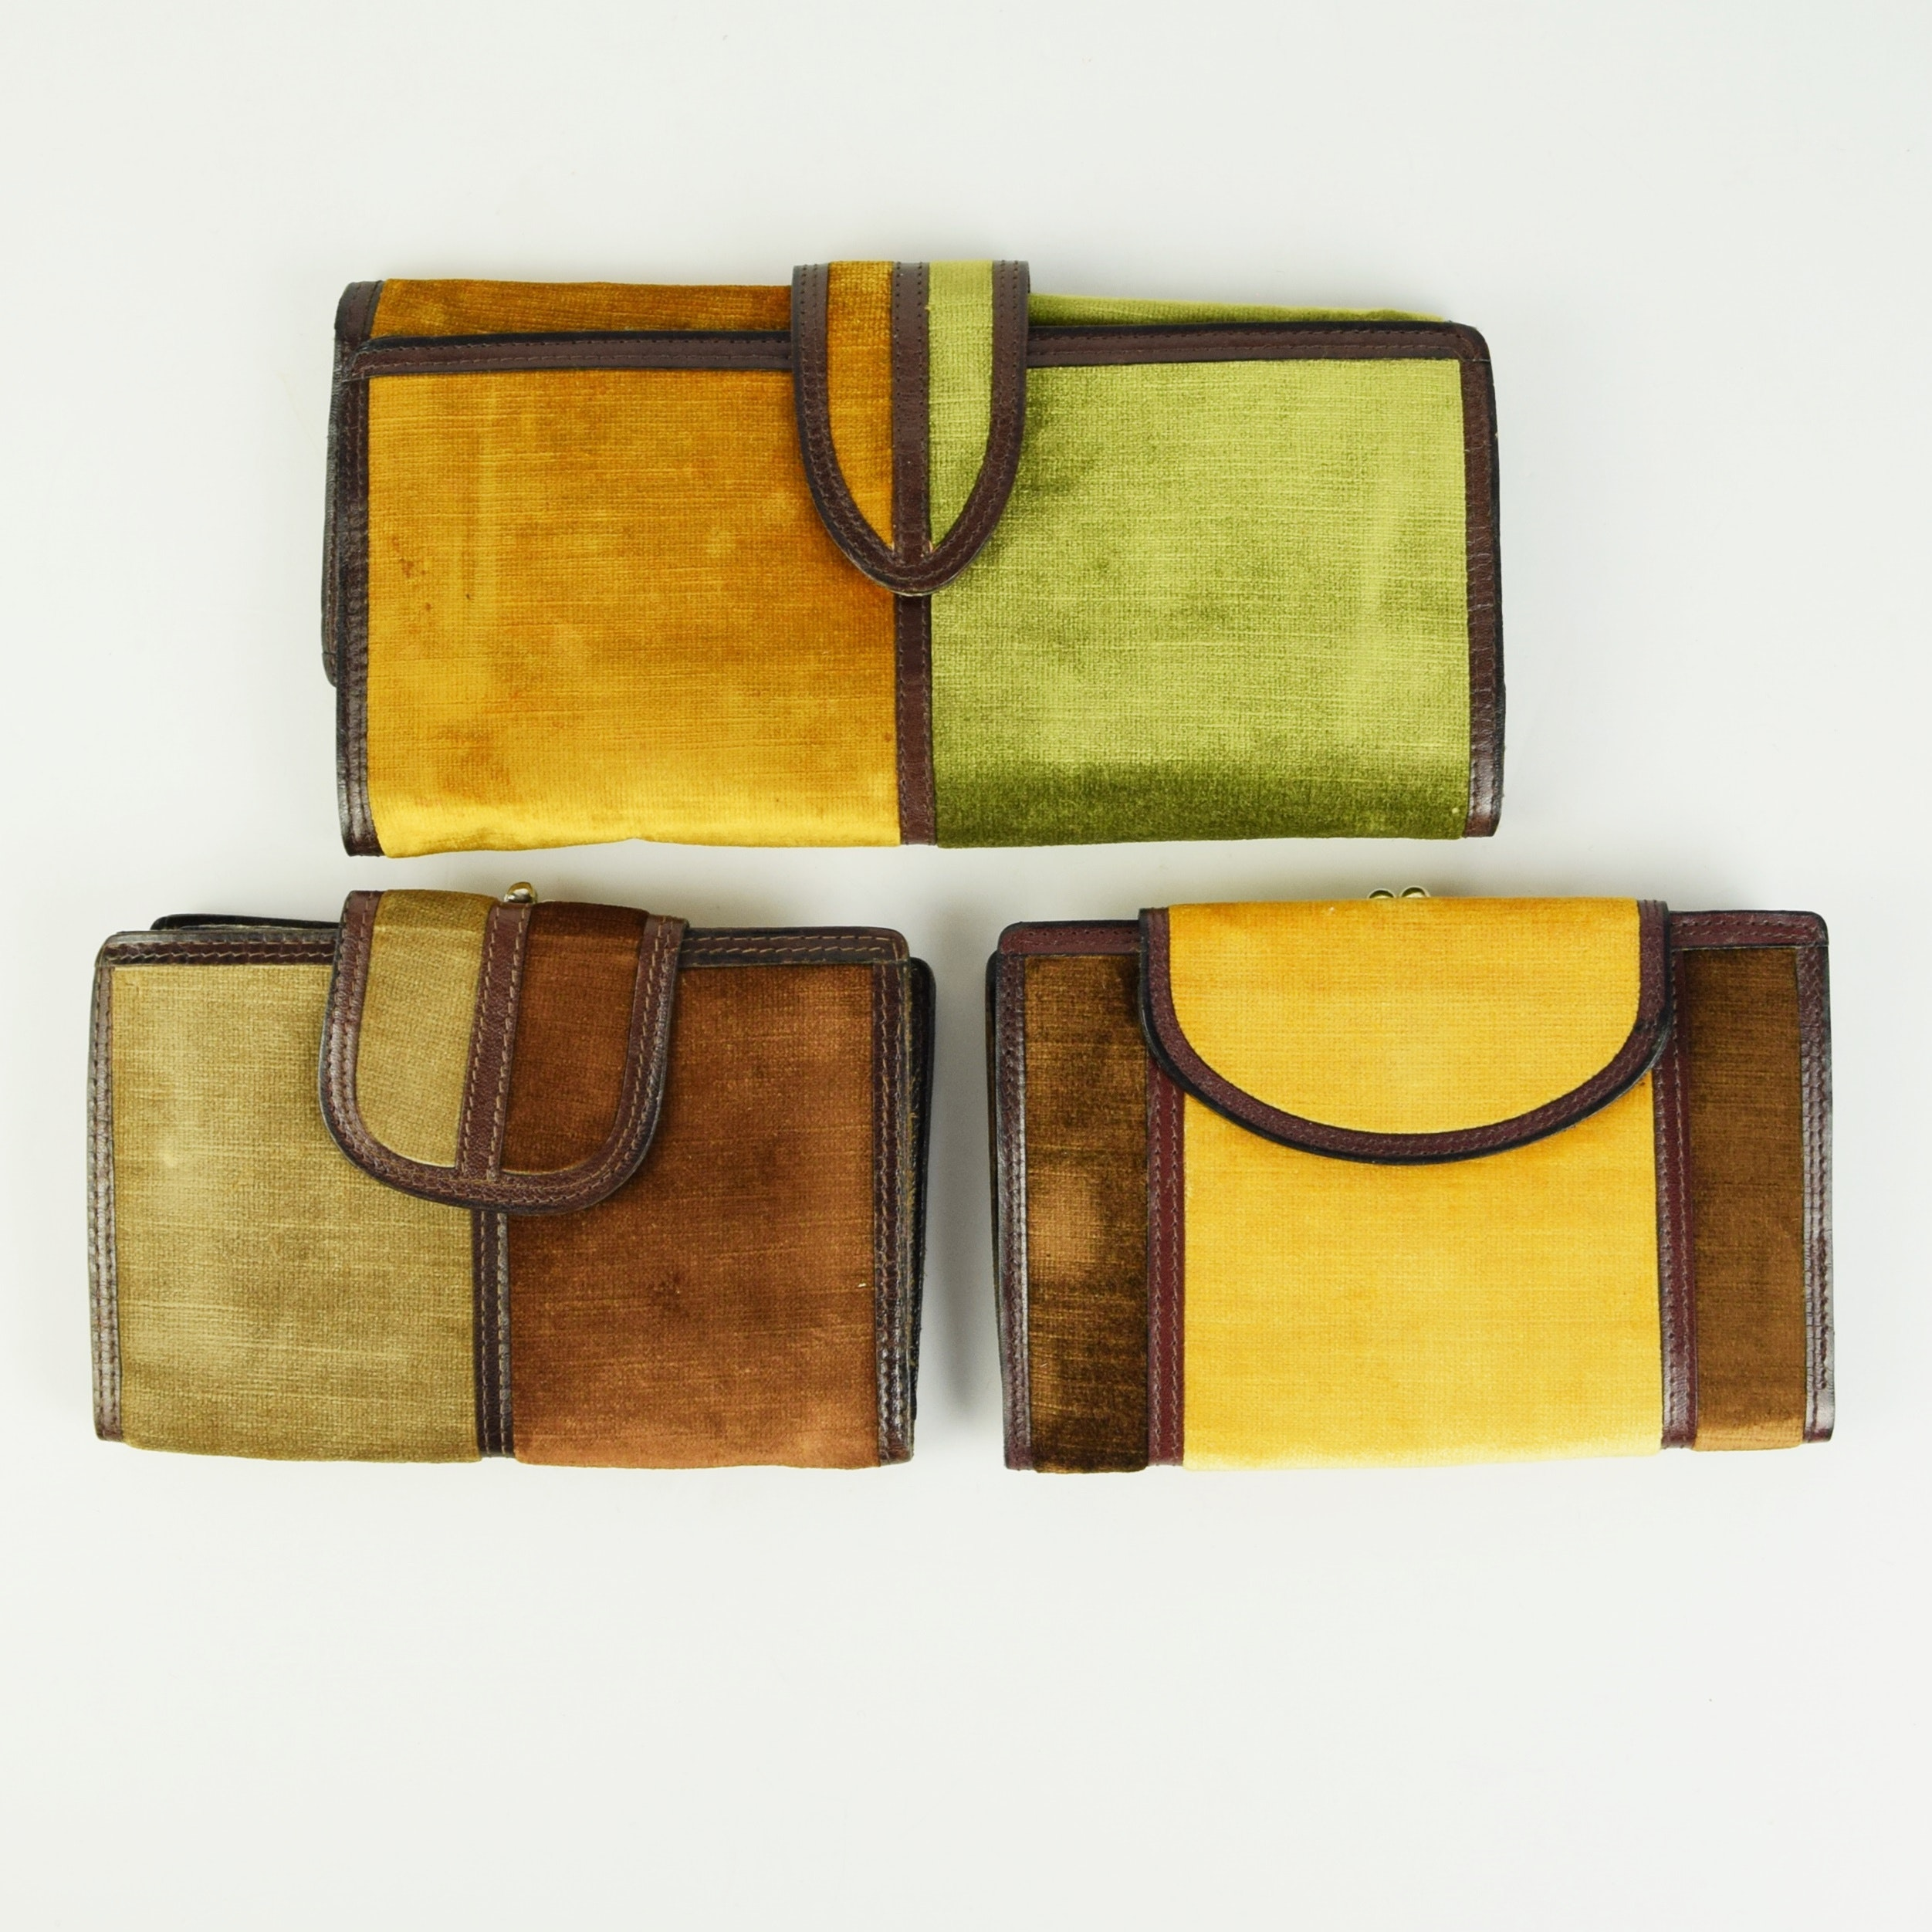 Vintage Italian Leather and Velvet Wallets and Jewelry Pouch